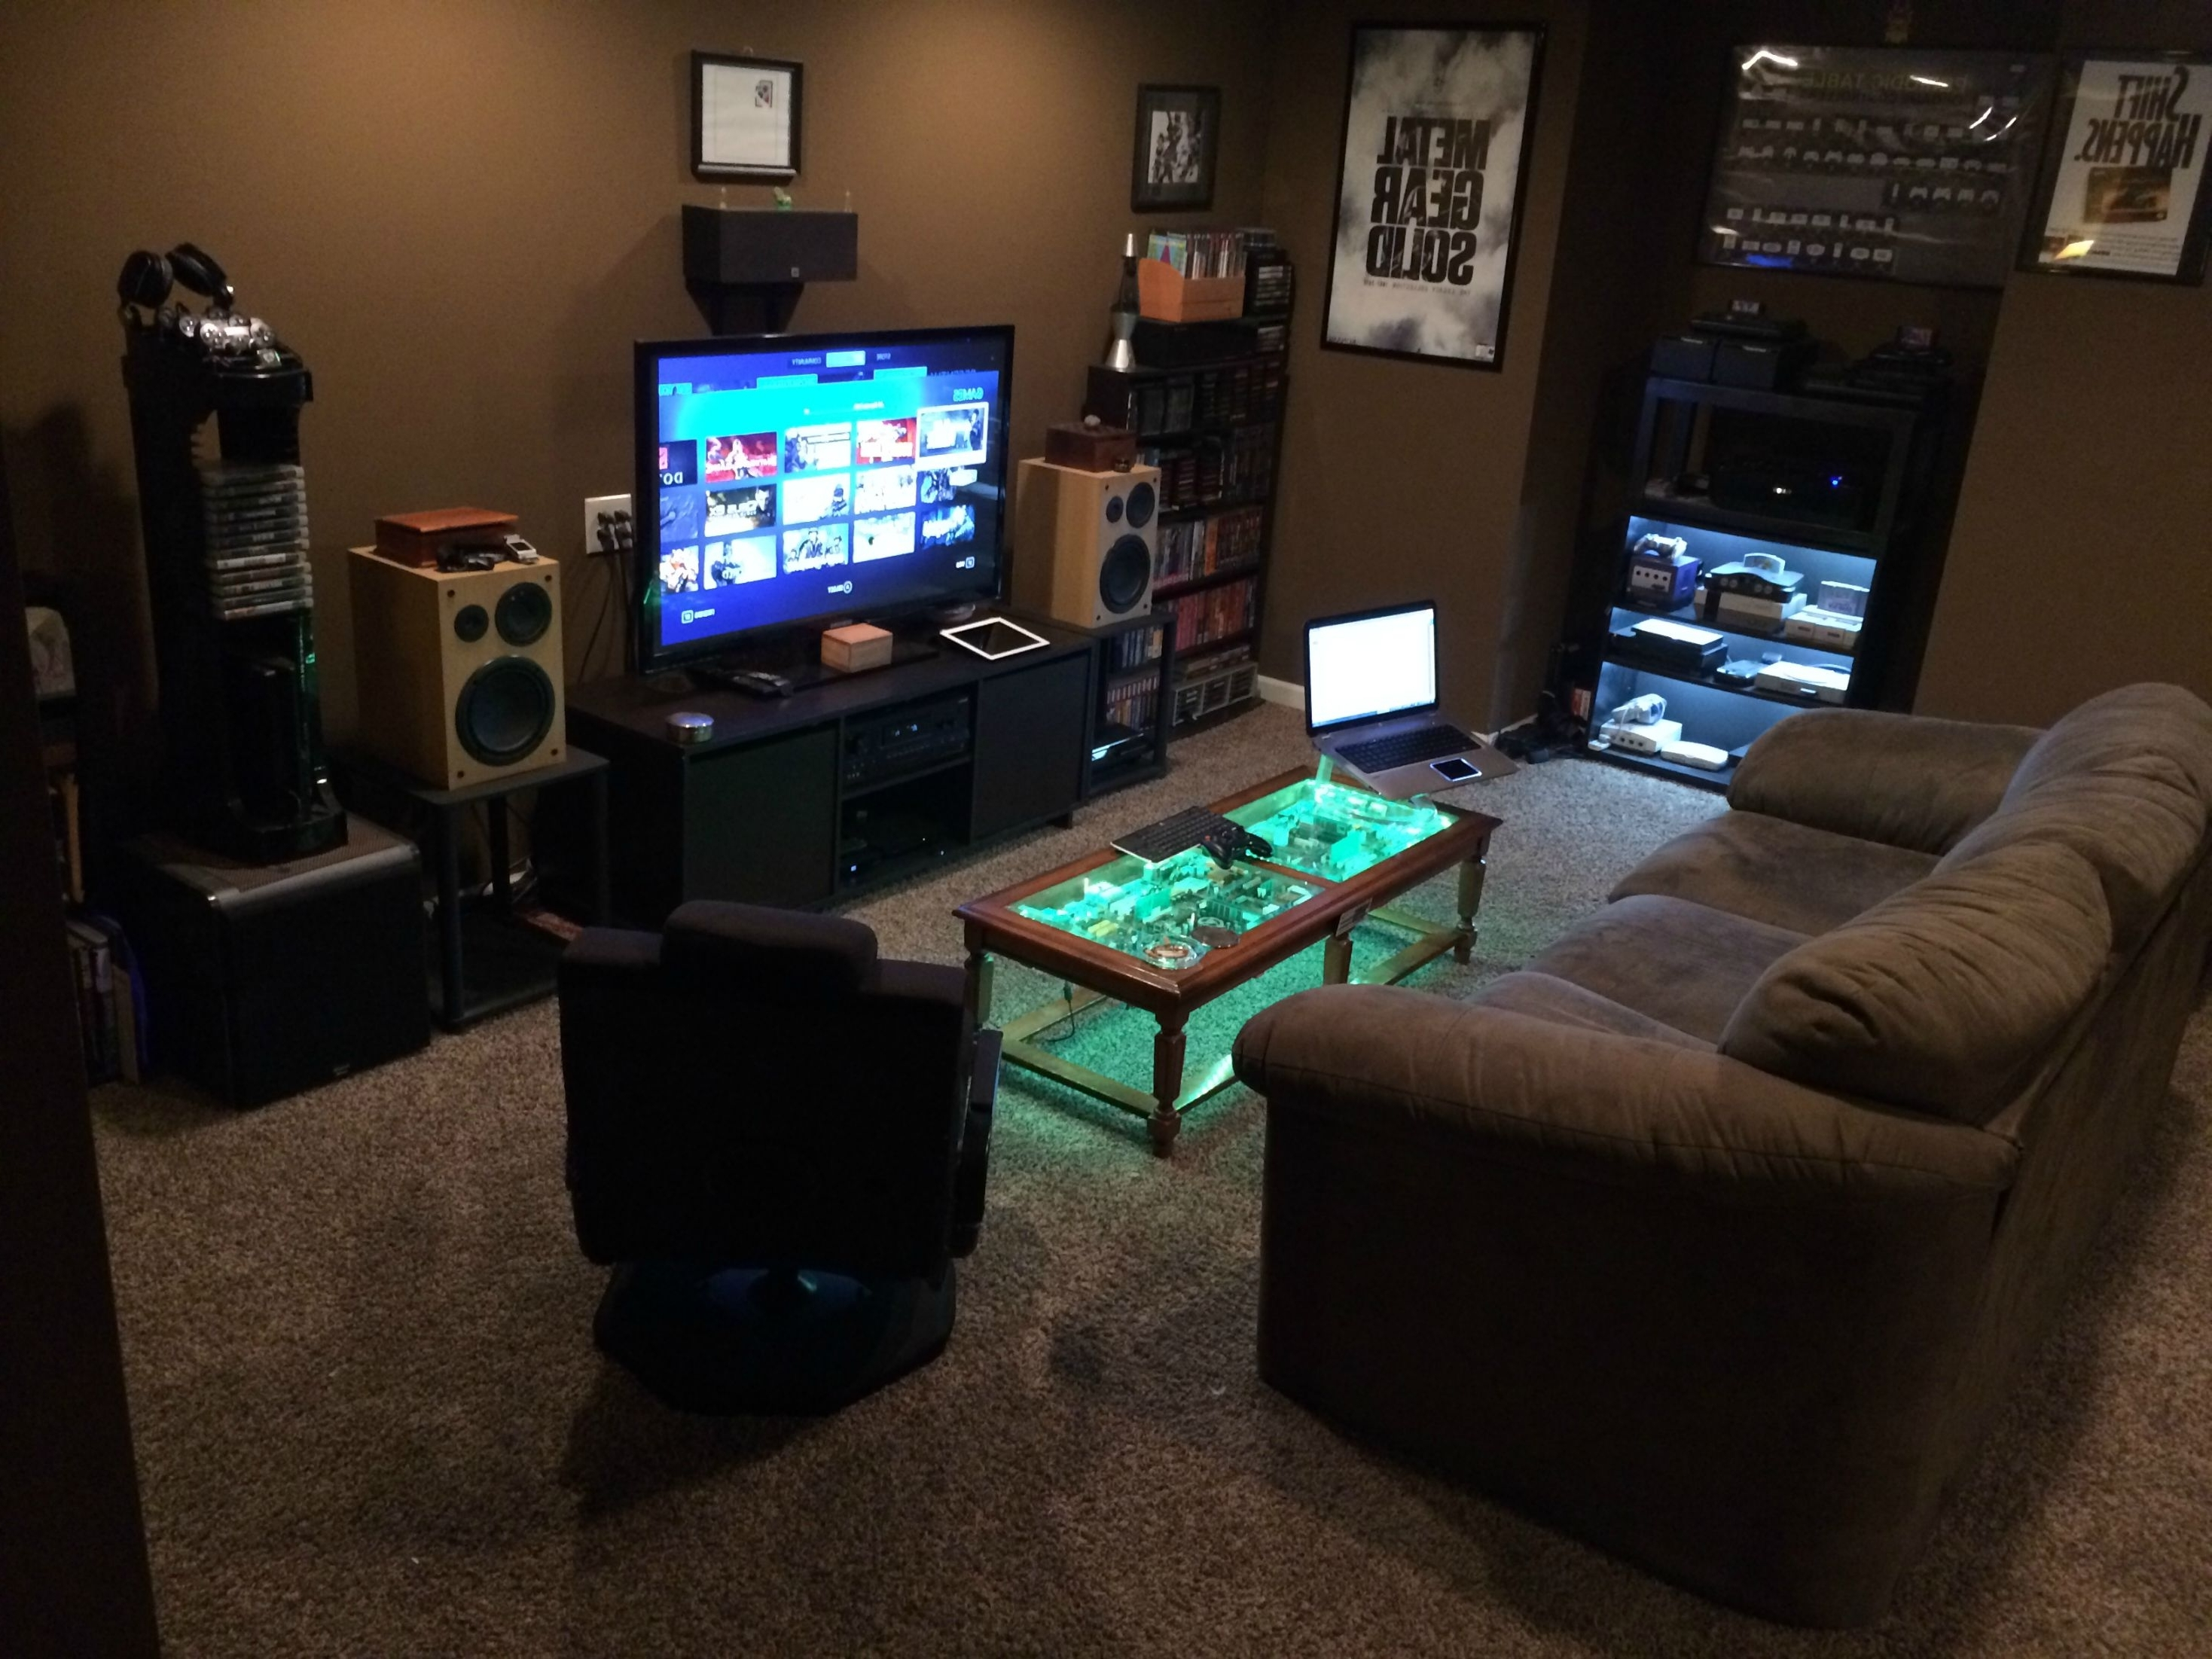 Game Room Decor Diy Video Game Room Decor Small Entertainment Game Room Ideas 942142 Hd Wallpaper Backgrounds Download